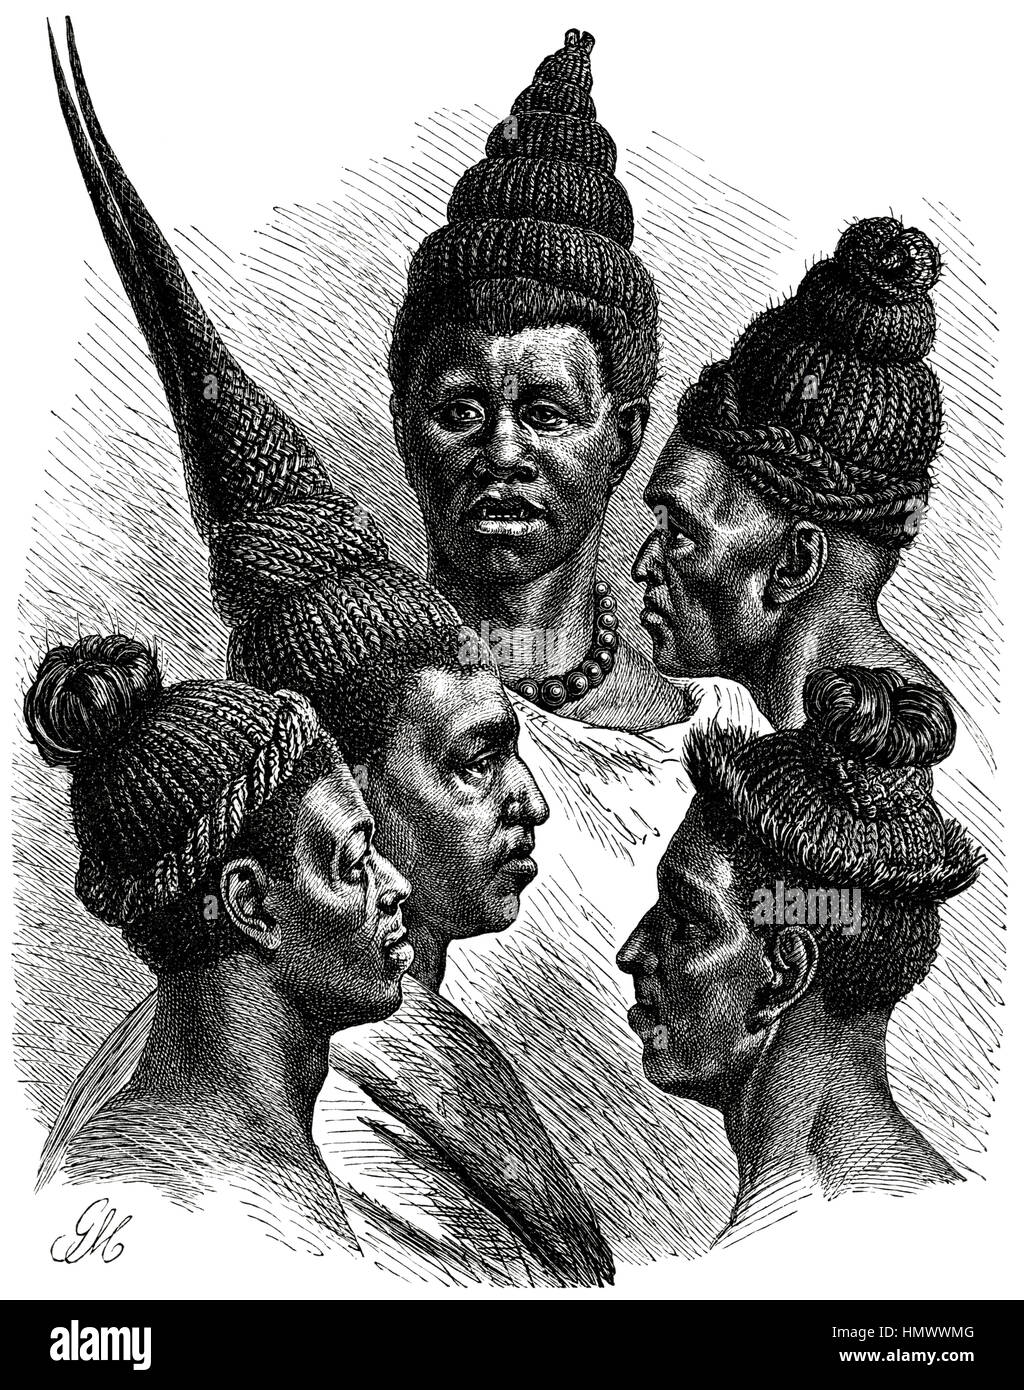 La mode des cheveux de l'Maschukulumbe, Afrique australe, de l'Illustration, 1885 Photo Stock